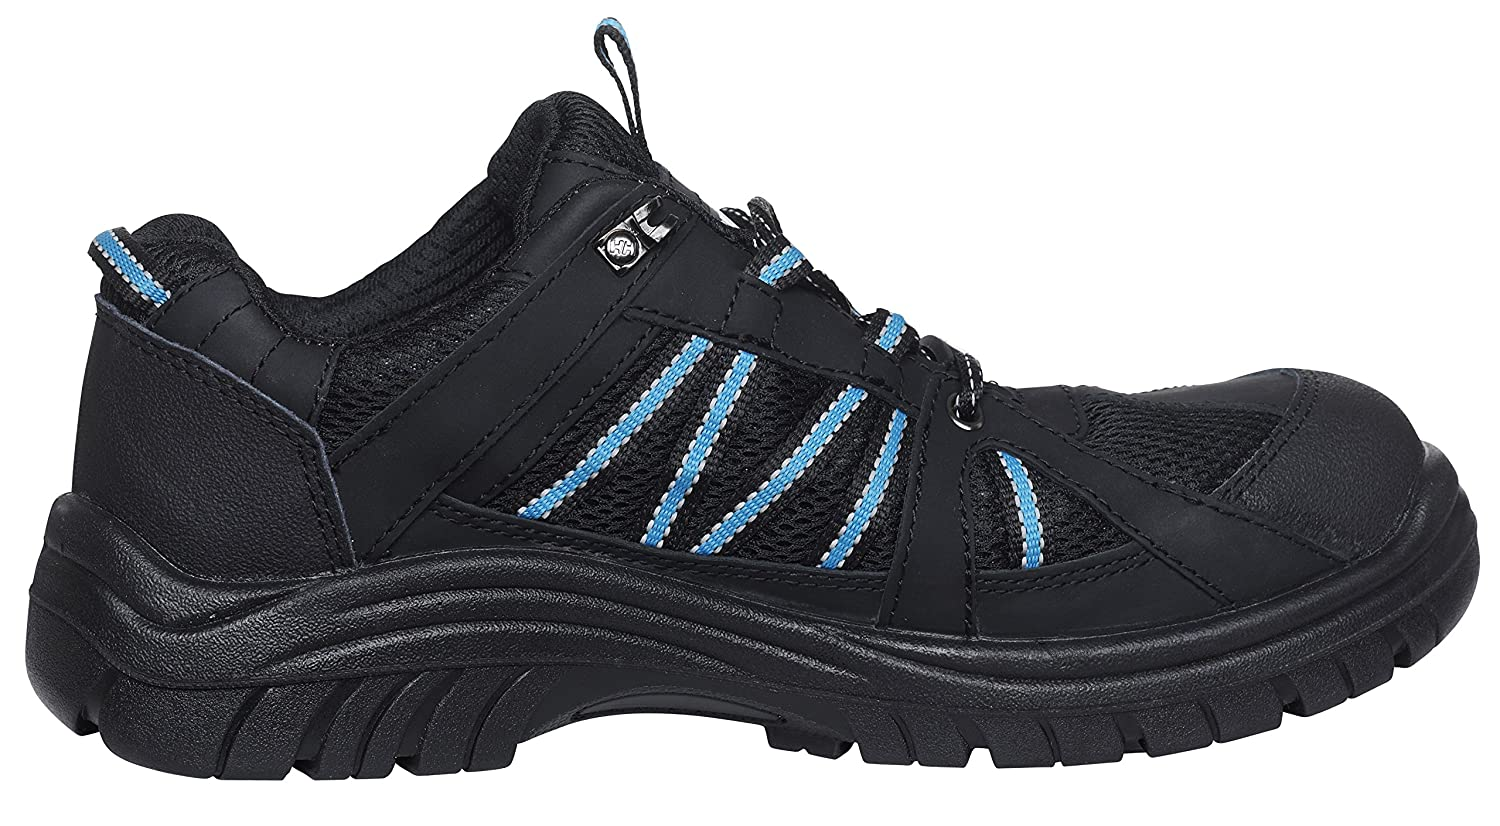 d24fb83ac36 Helly Hansen Workwear Safety Shoes S3 KOLLEN WW 78201 Helly Hansen Safety  Shoes, Leather, Black, black, 78201 - EN safety certified: Amazon.co.uk:  Business, ...